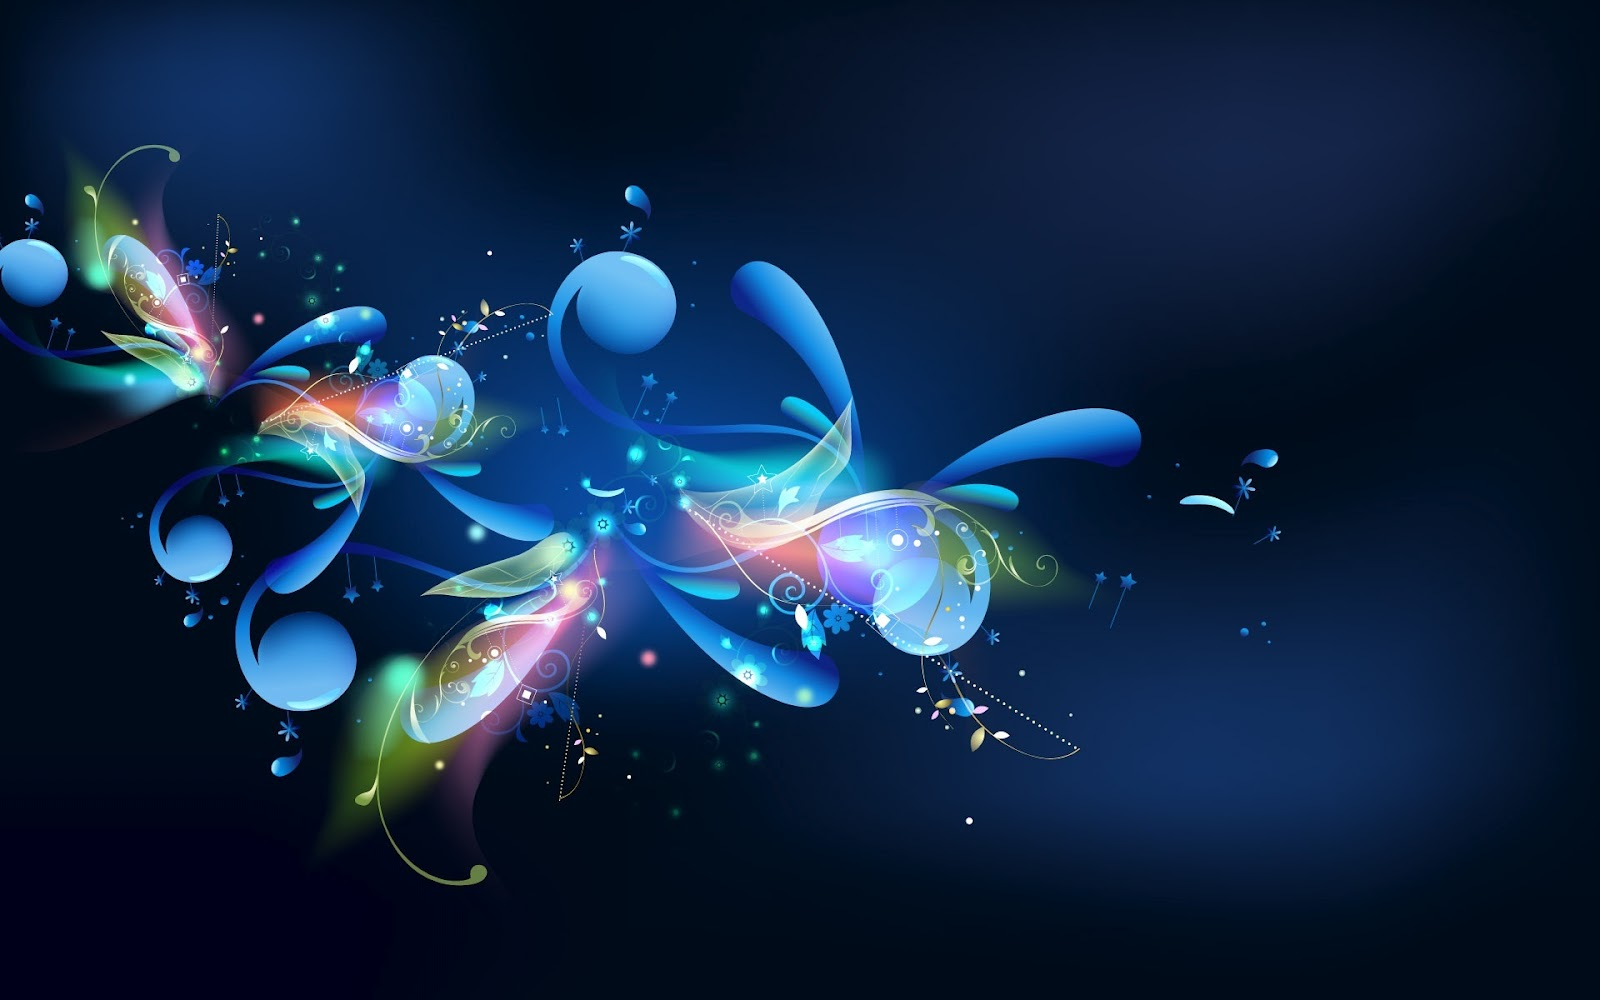 Backgrounds wallpapers hd for windows 8 wallpapersafari - Hd wallpapers for pc windows ...